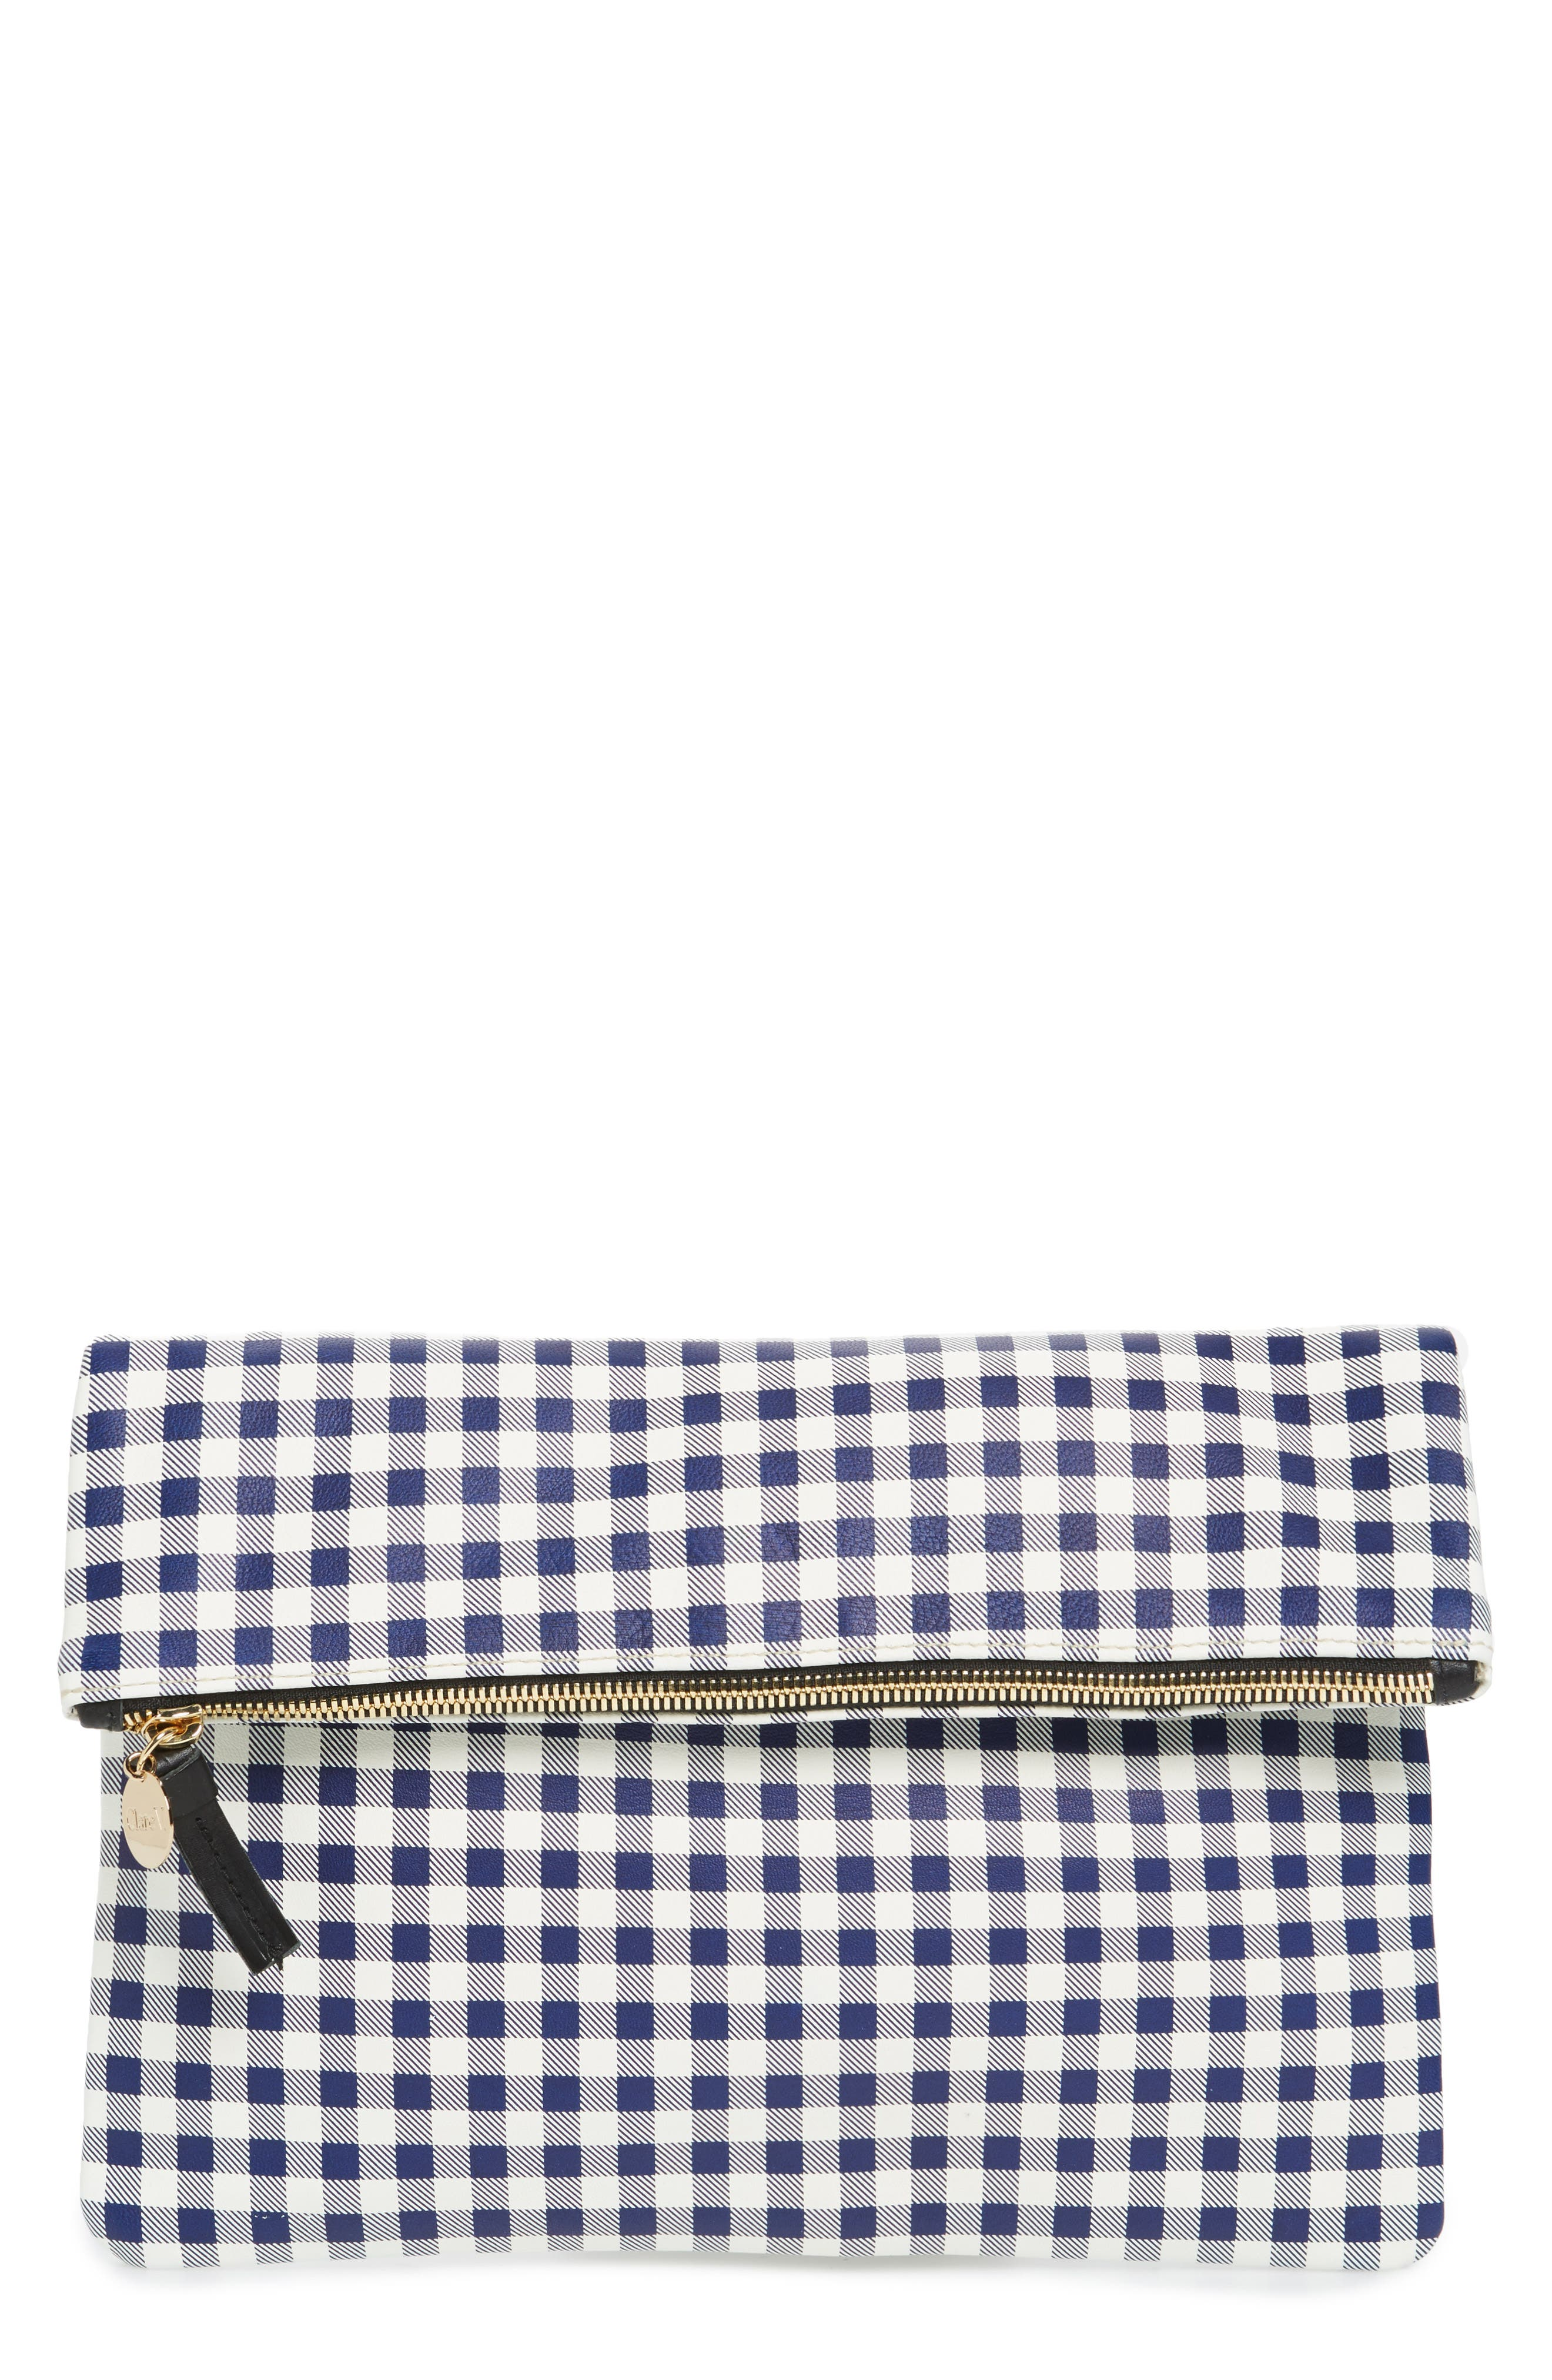 Main Image - Clare V. Gingham Leather Foldover Clutch